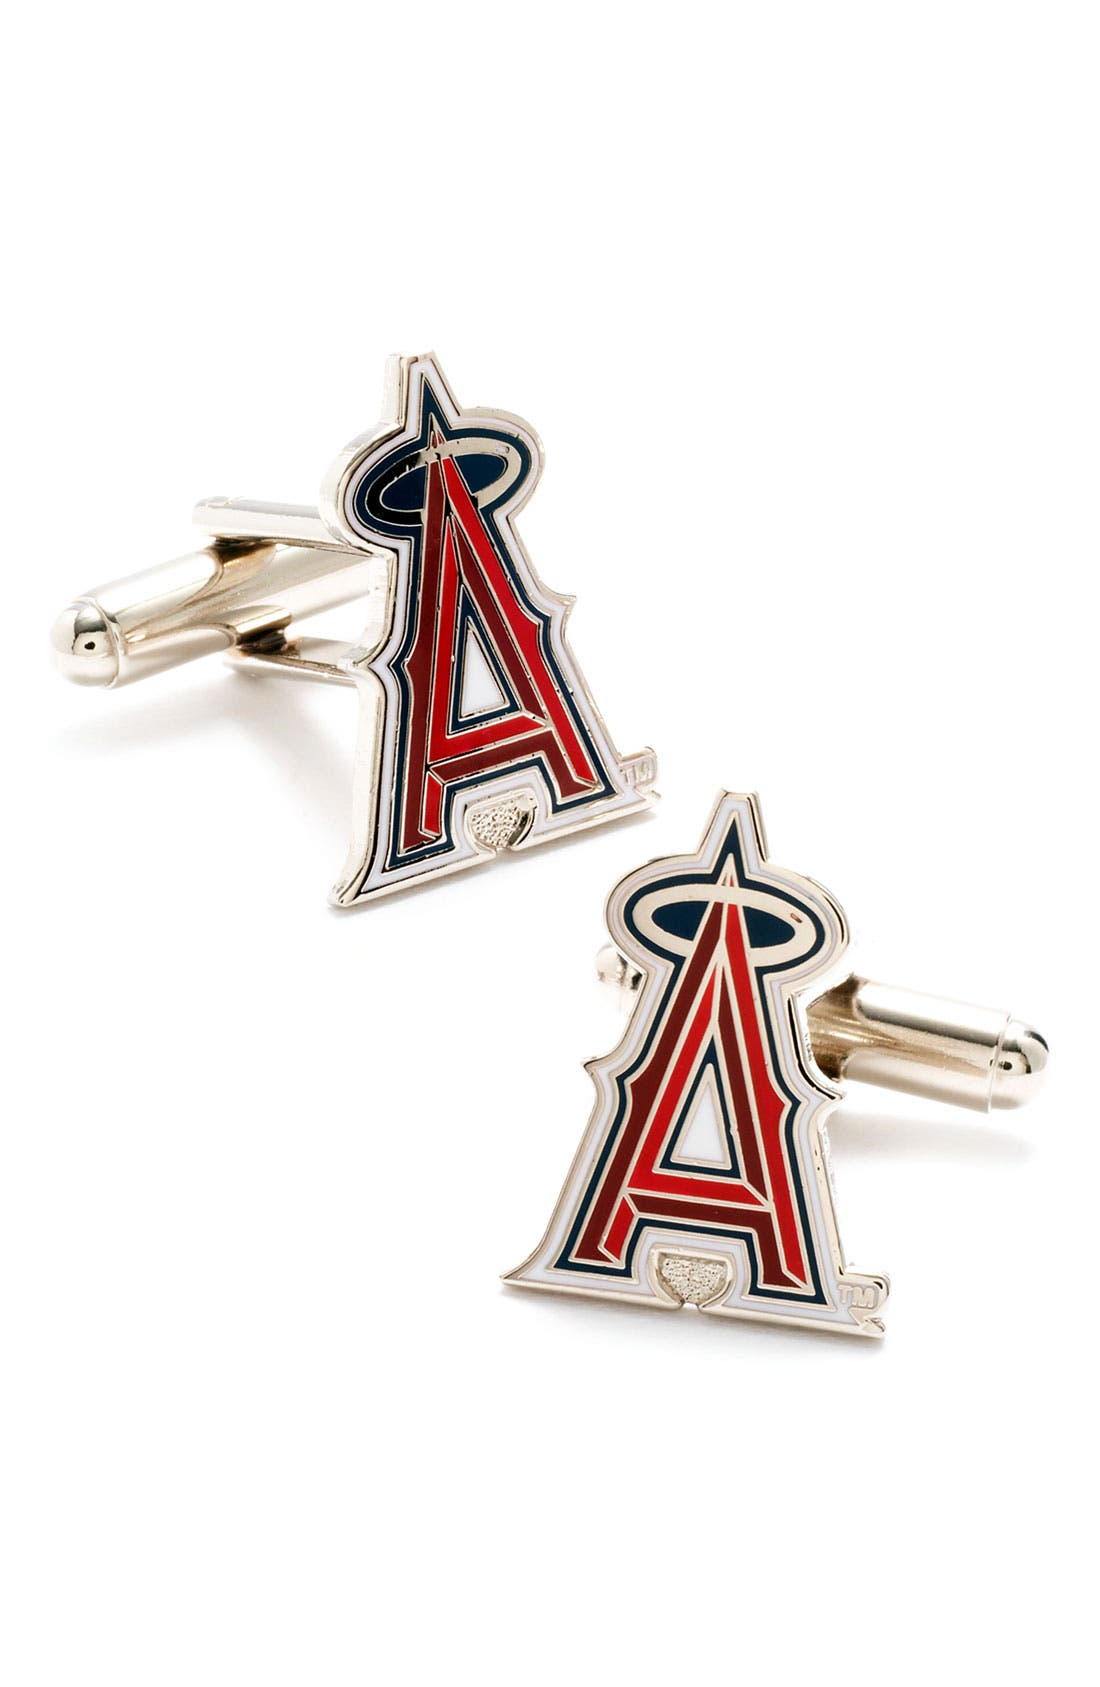 'Los Angeles Angels' Cuff Links,                         Main,                         color, Red/ Black